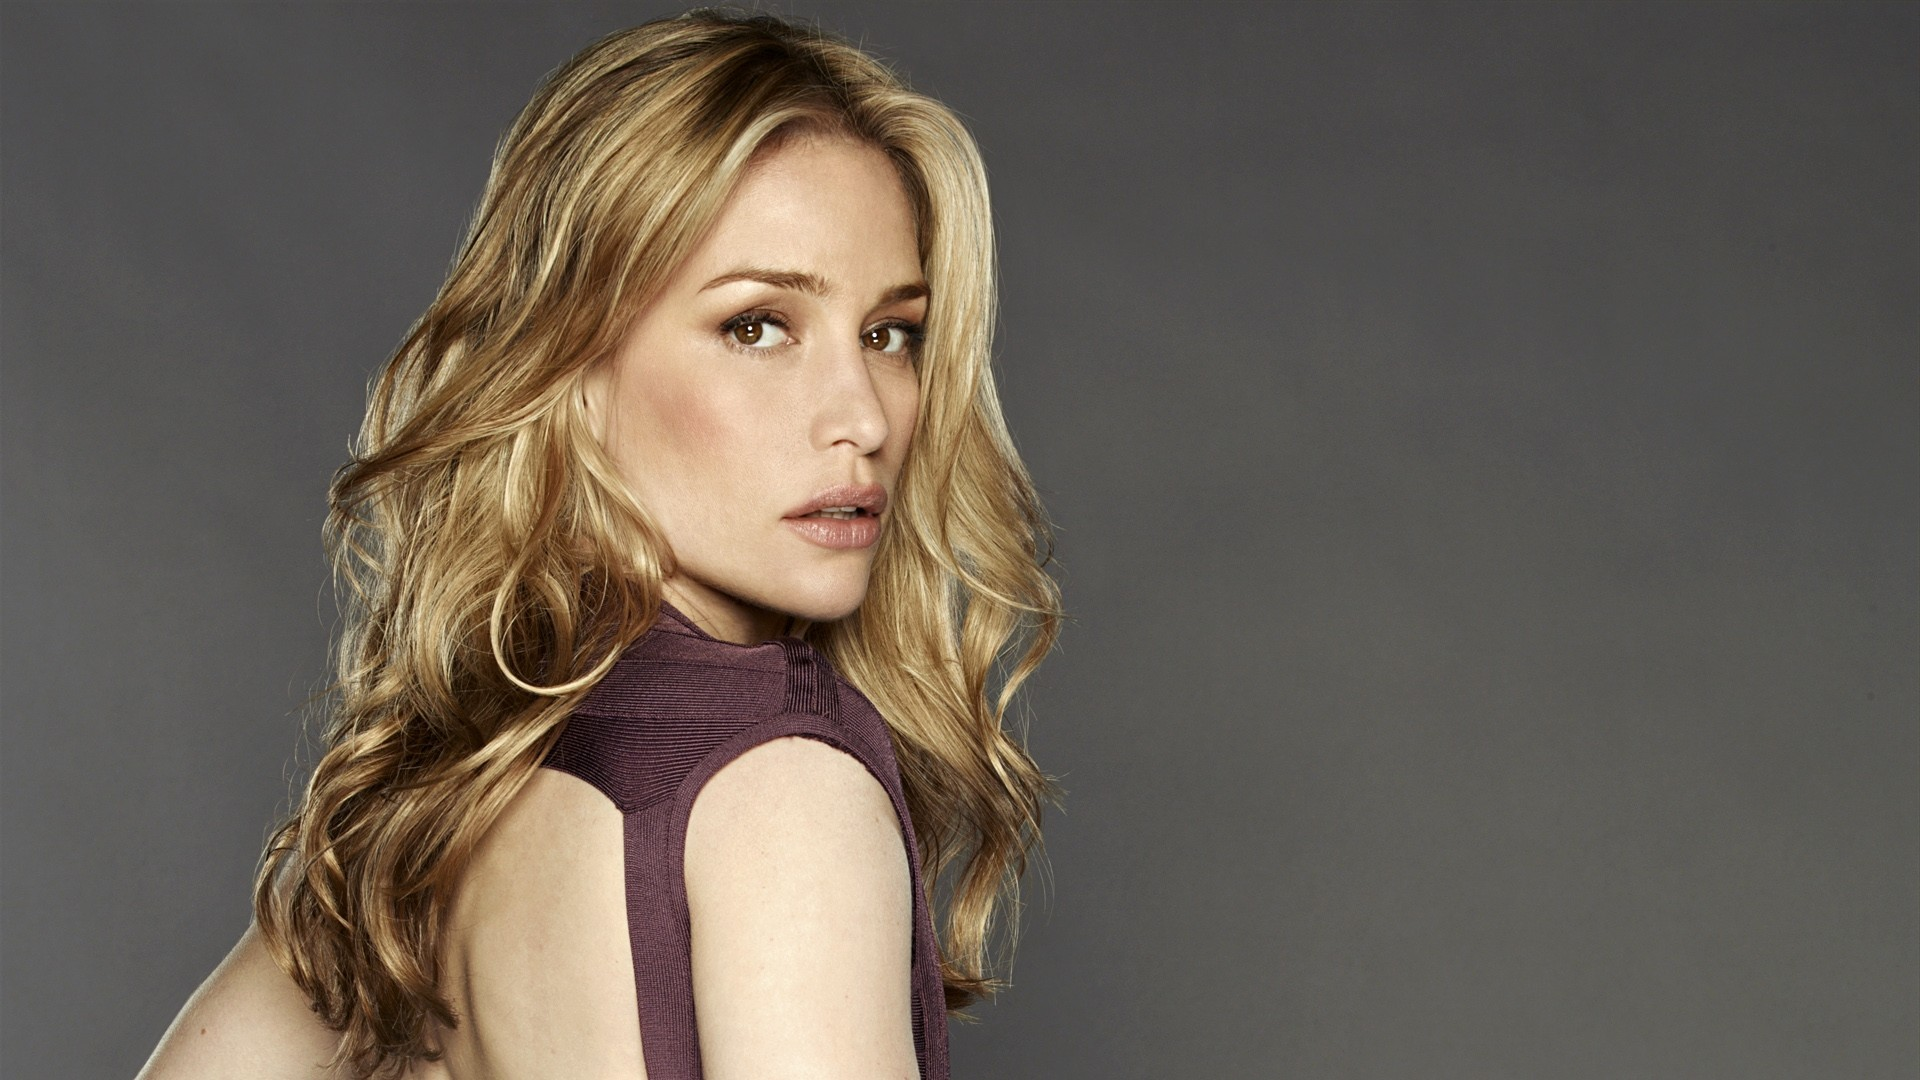 piper perabo wallpaper 66997